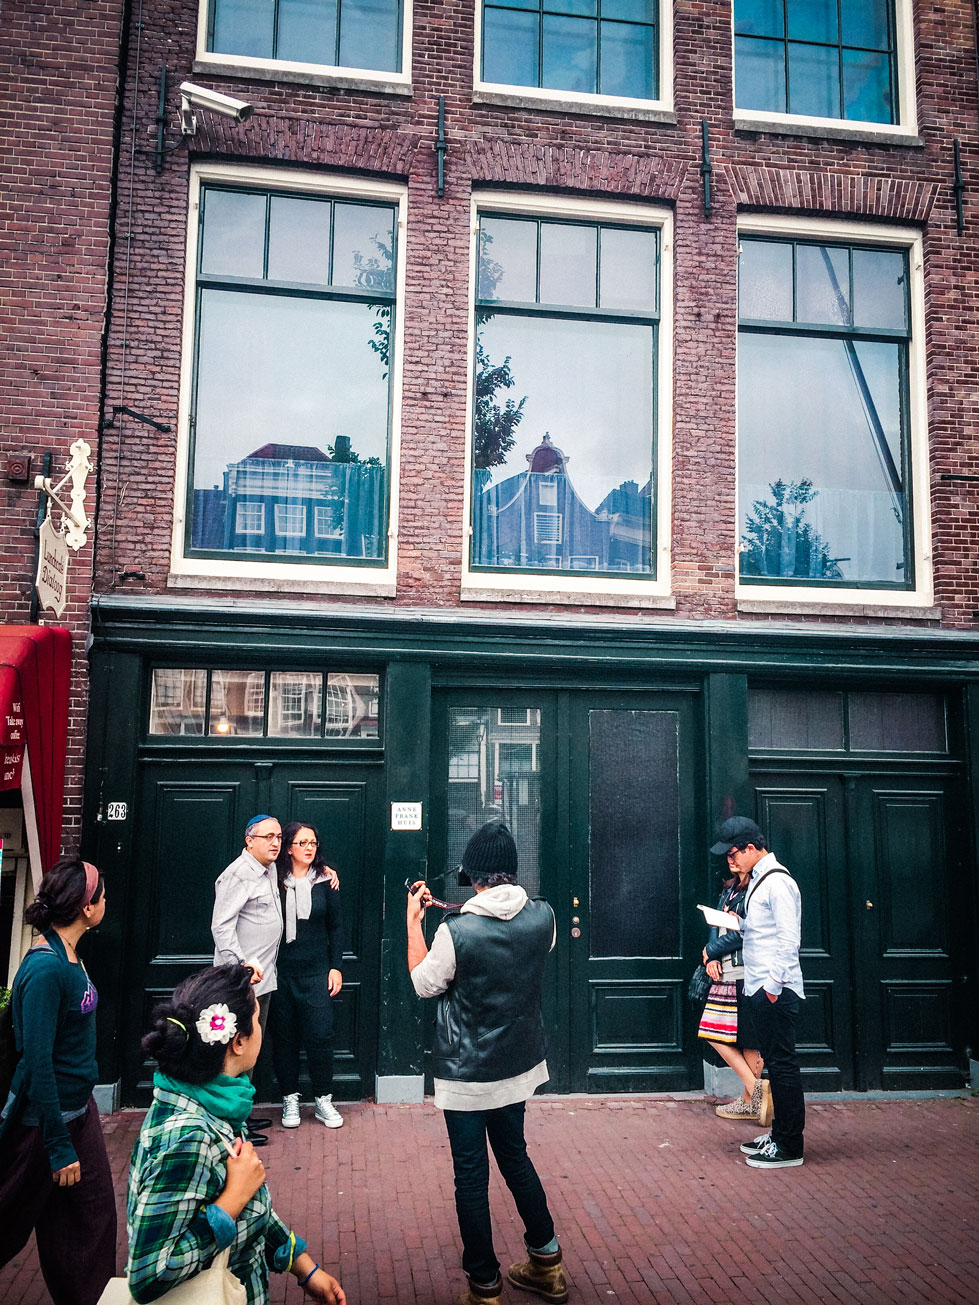 Anne Frank House - The line was crazy long to get in, so we just breezed past to see it. This was a particularly beautiful moment, The couple of the left is taking a photograph while their children on the right read from the Torah. I'm not sure why this moment was so striking to me but it'll stay with me forever.